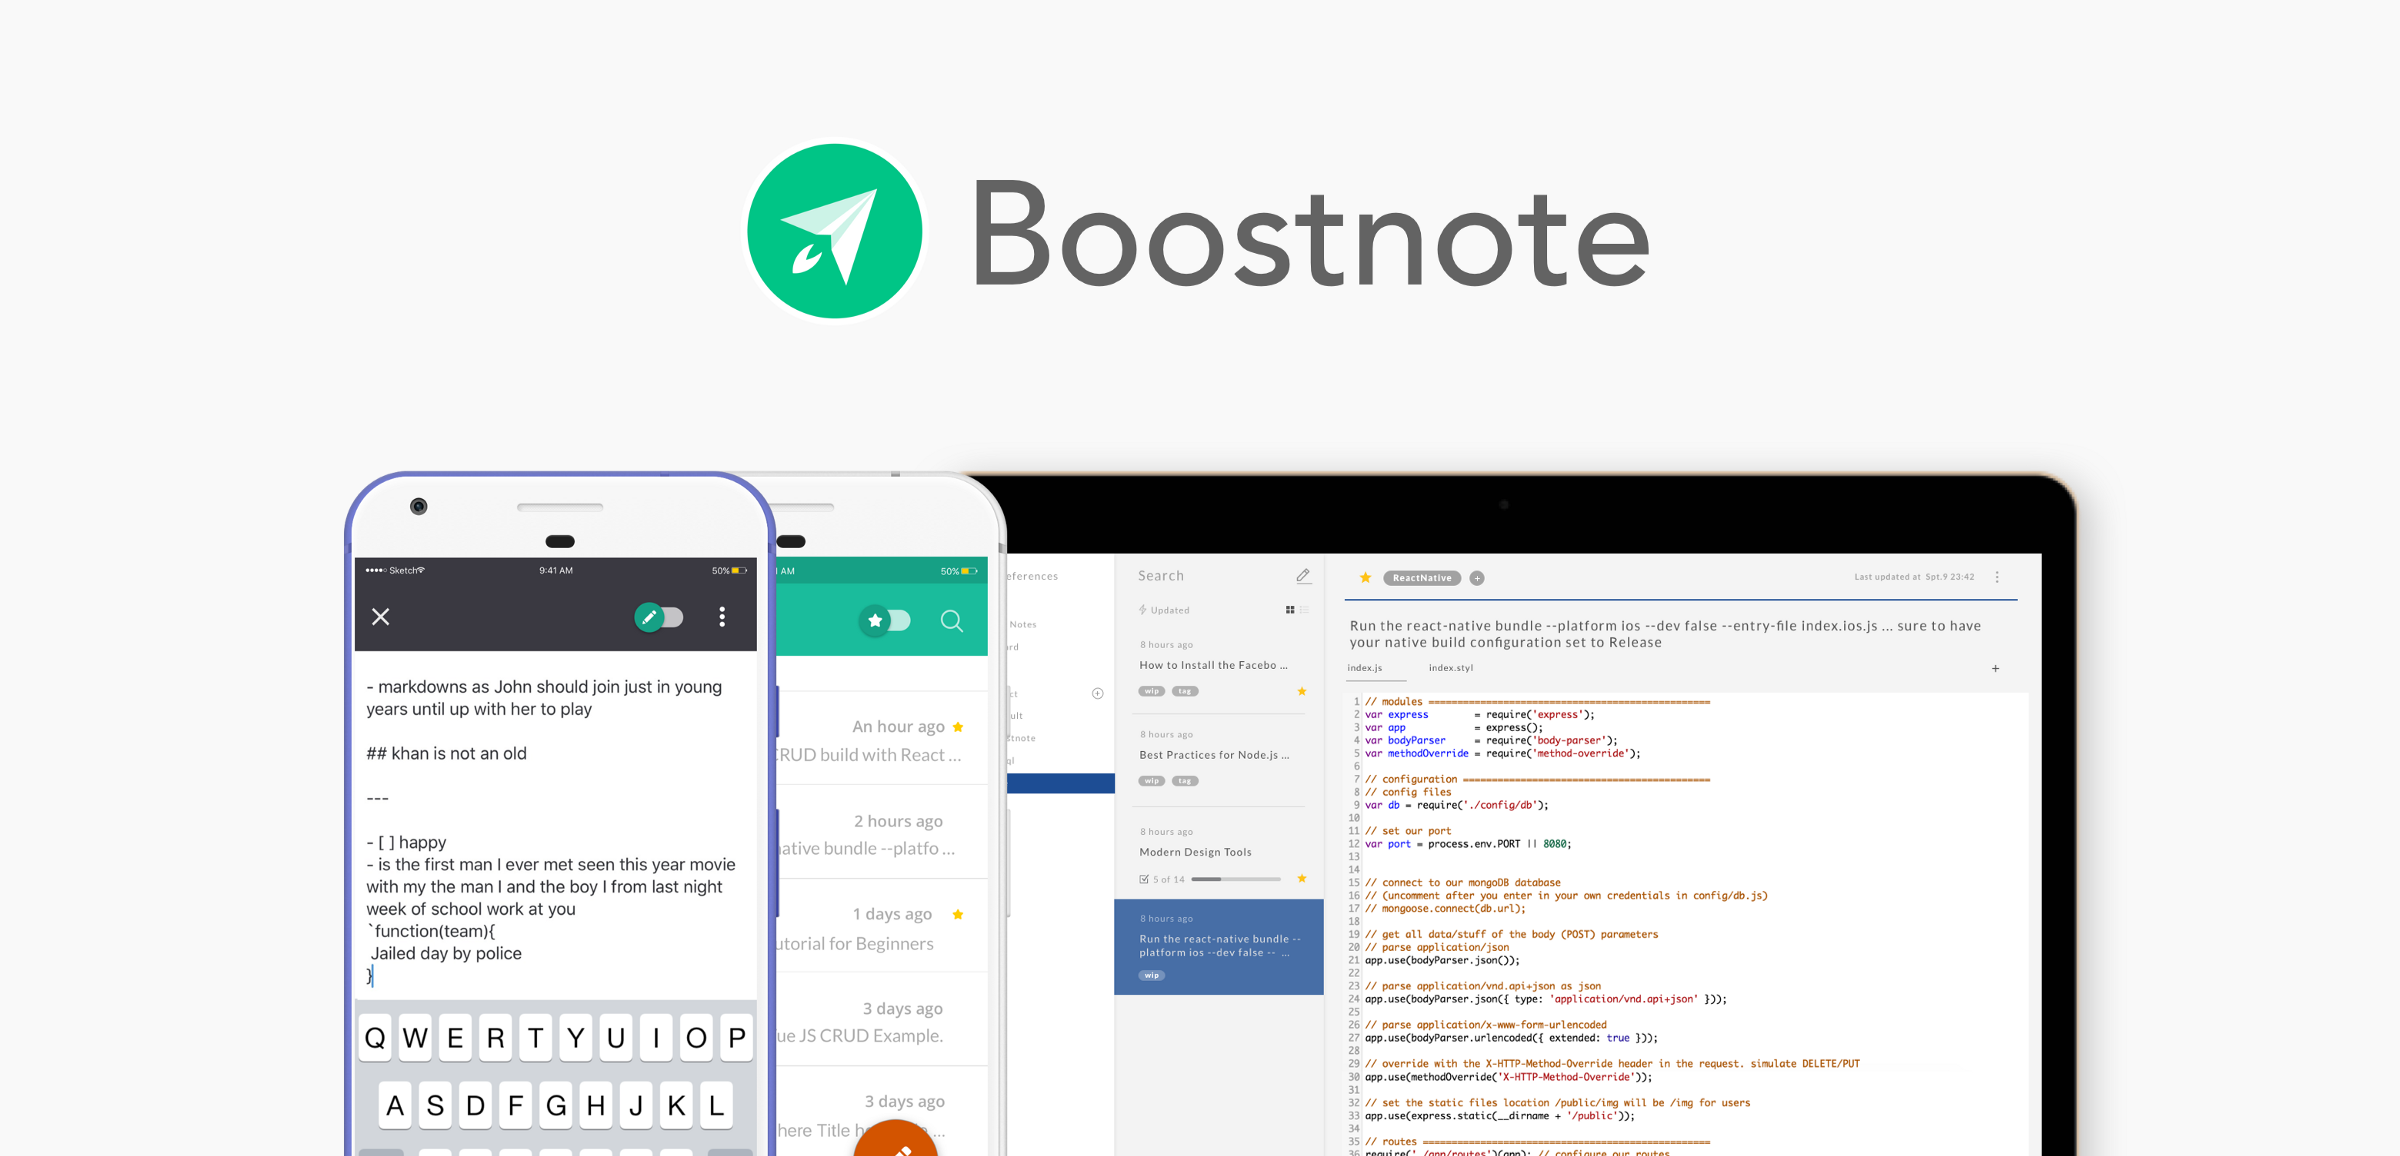 Boostnote | Boost your happiness, productivity and